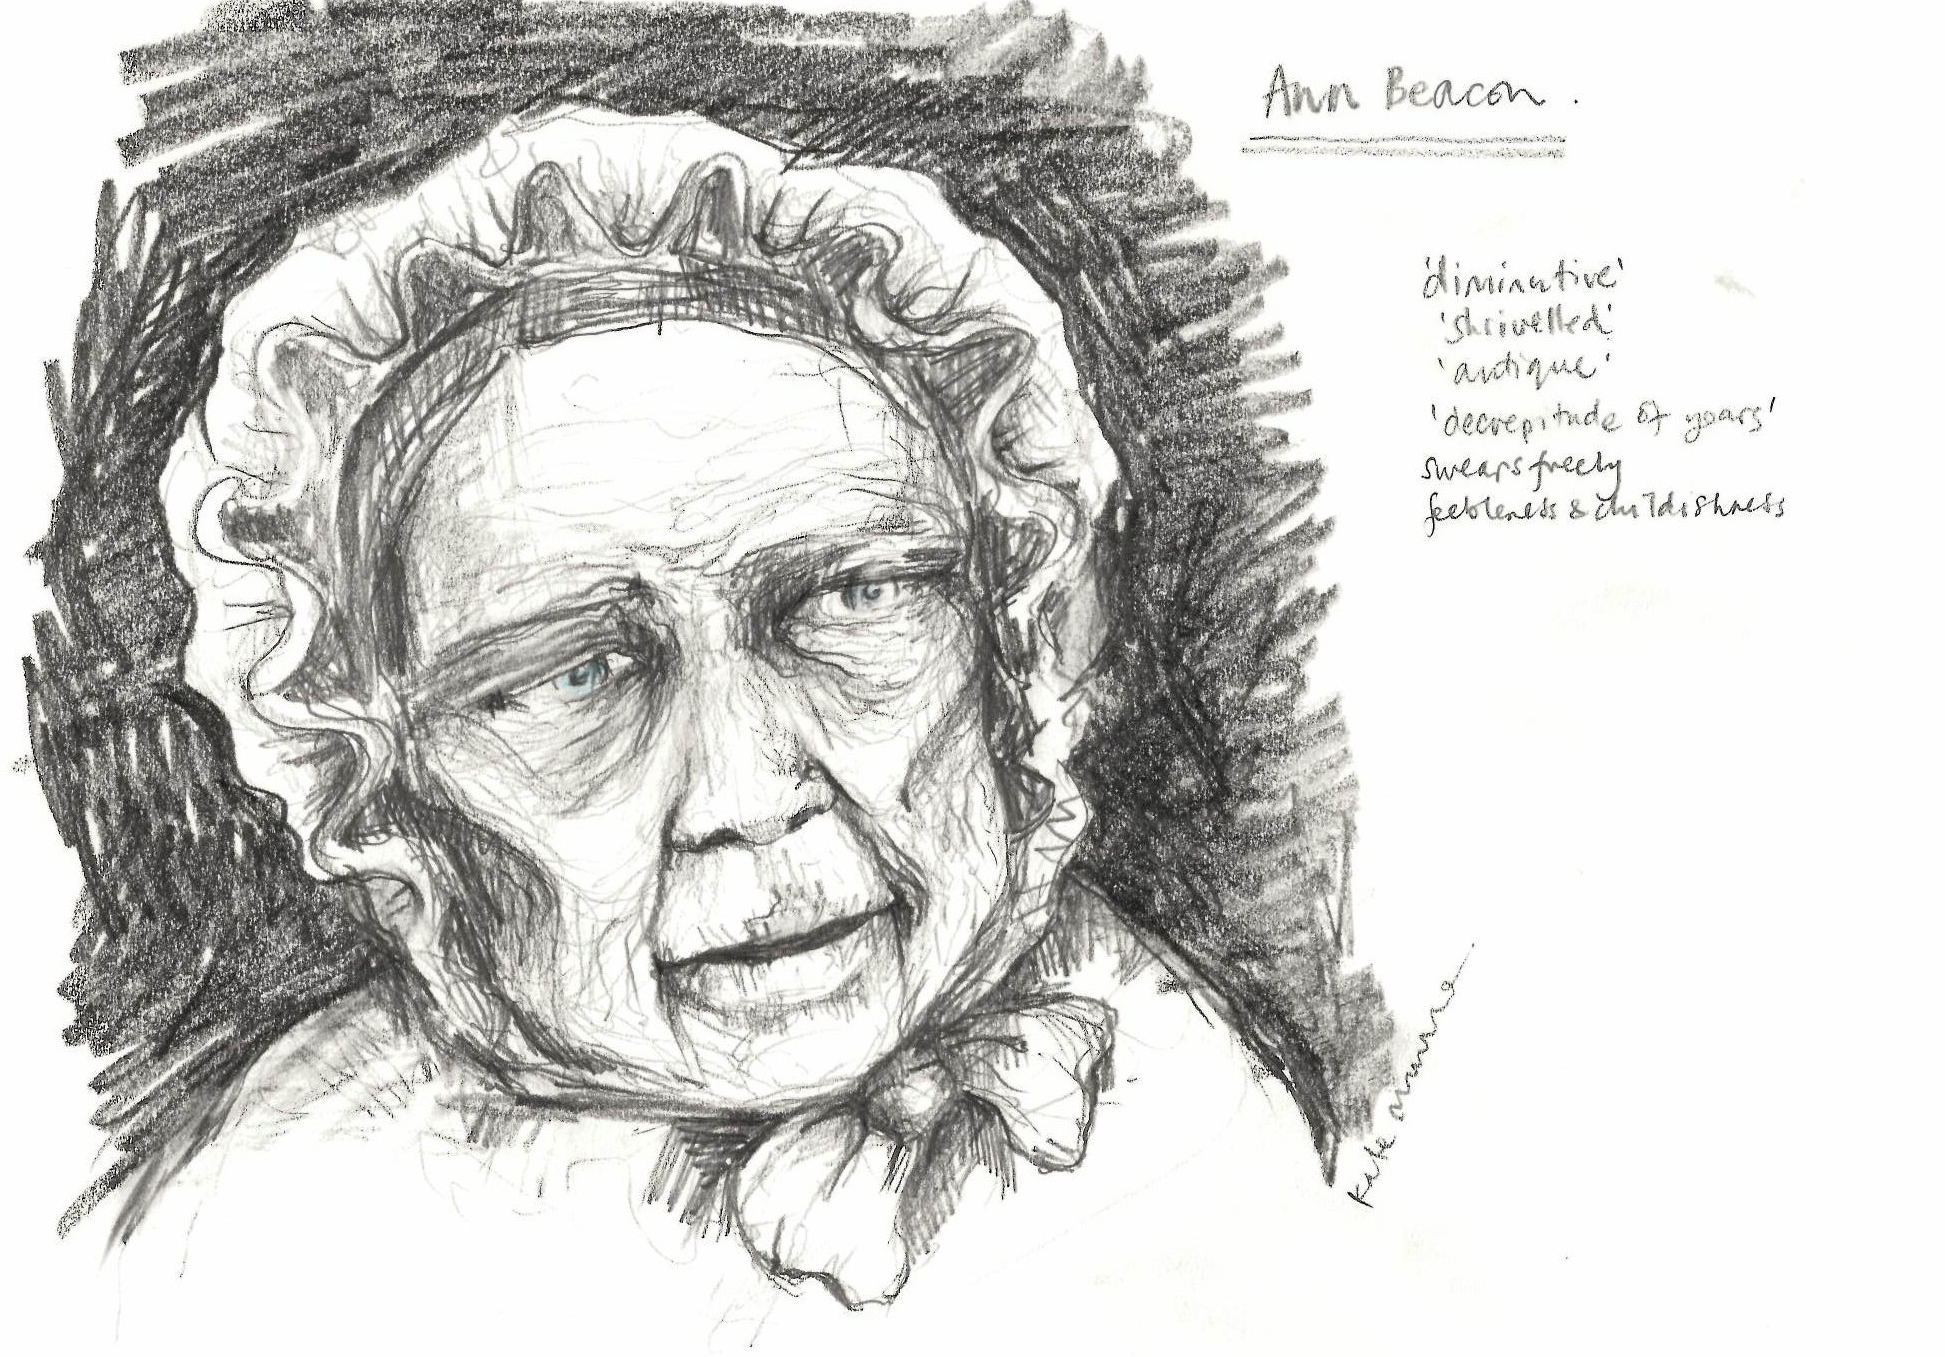 An artist's impression of what Ann Beacon might have looked like. Source: Wellcome Collection. © Wellcome Collection/ Katie Munro .  CC BY